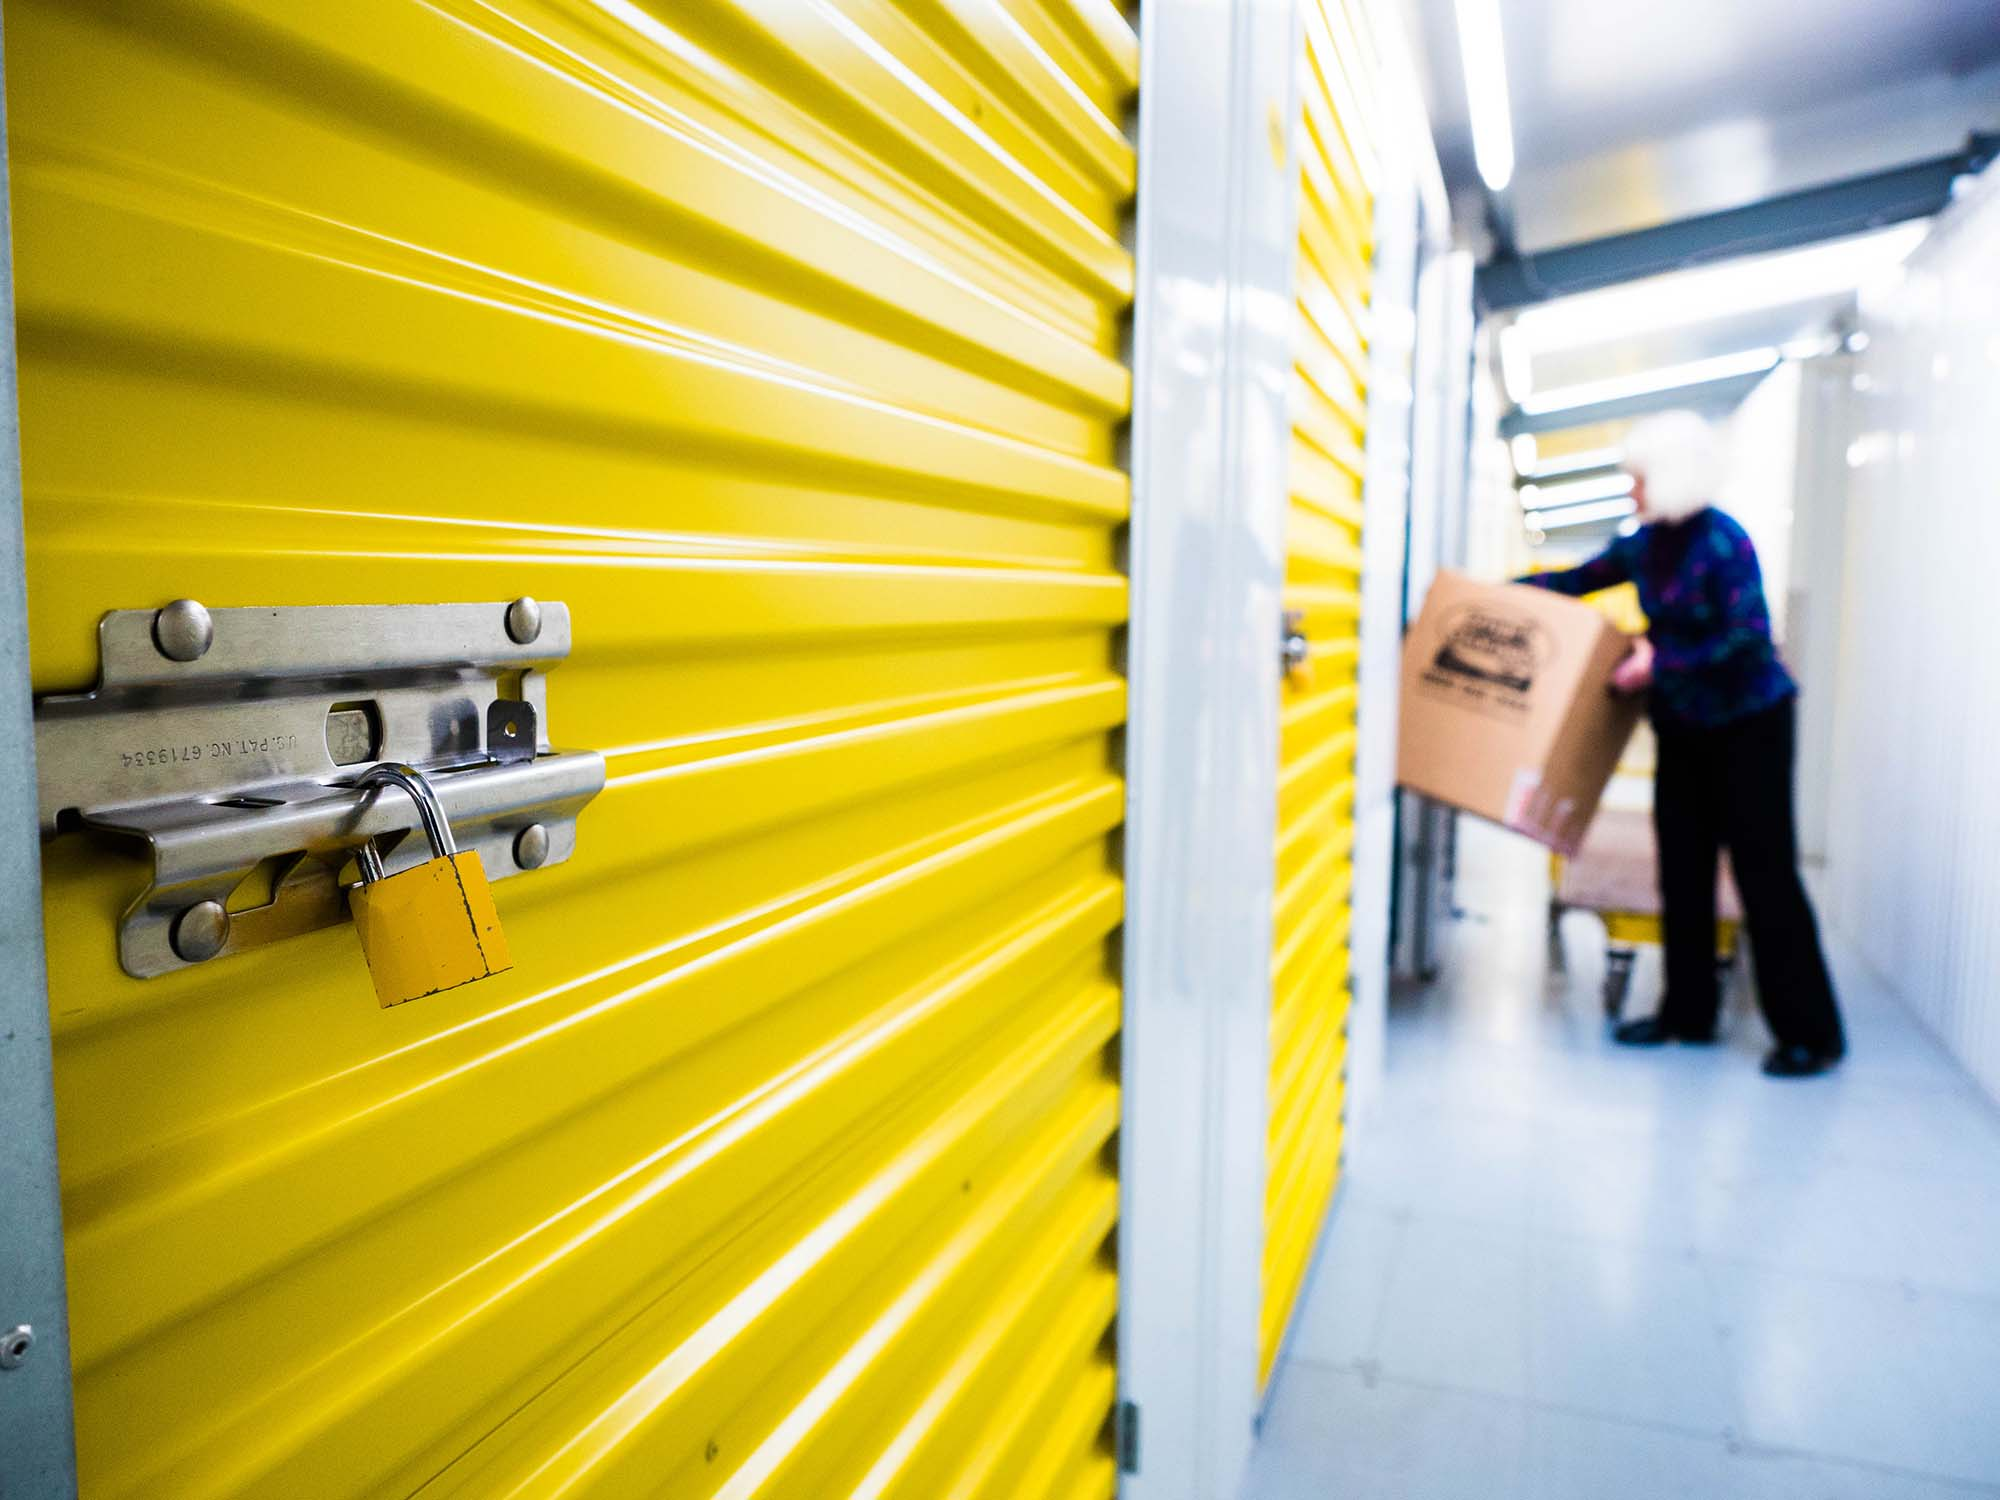 Smart Storage Preston provides tailor made storage solutions for both domestic and commercial customers in Preston and the surrounding areas. & Self Storage Preston | Cheap Storage Units | Smart Storage Ltd